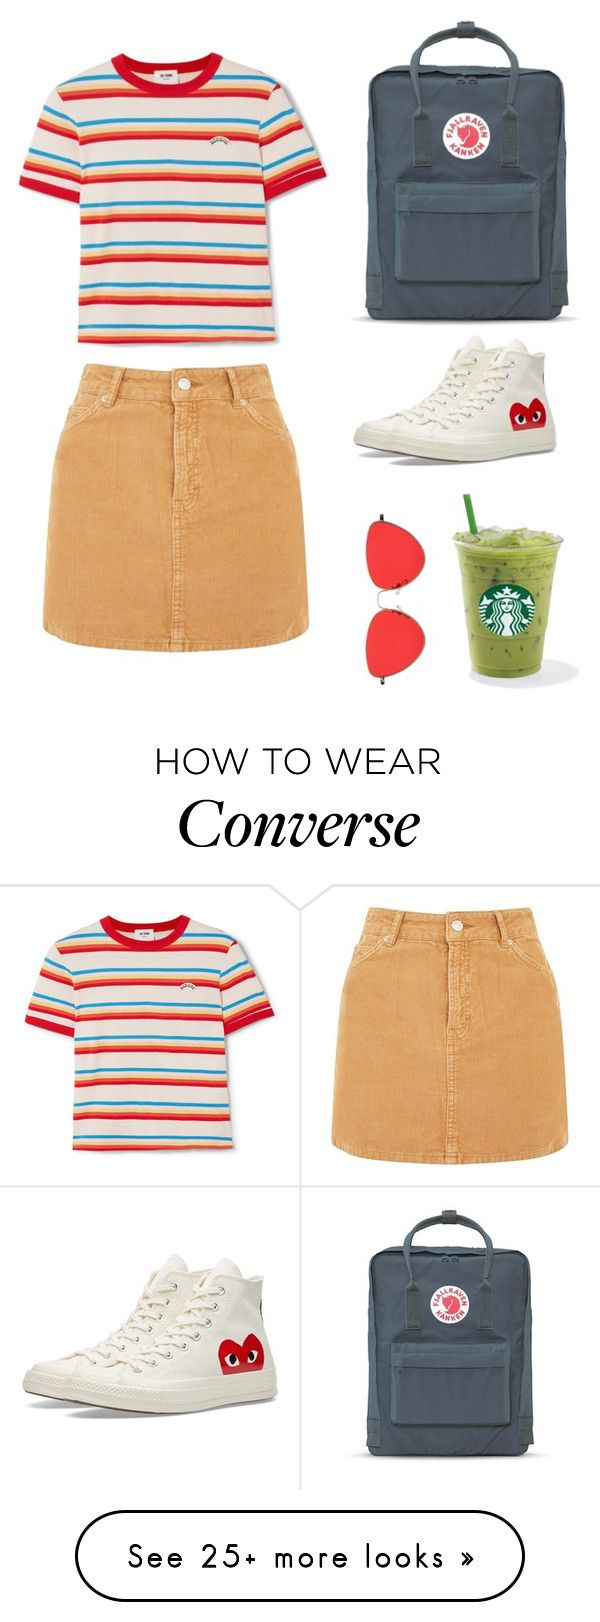 """""""Basic Girly"""" by tissamxxx on Polyvore featuring Topshop, RE/DONE, Fjällräven and Converse"""